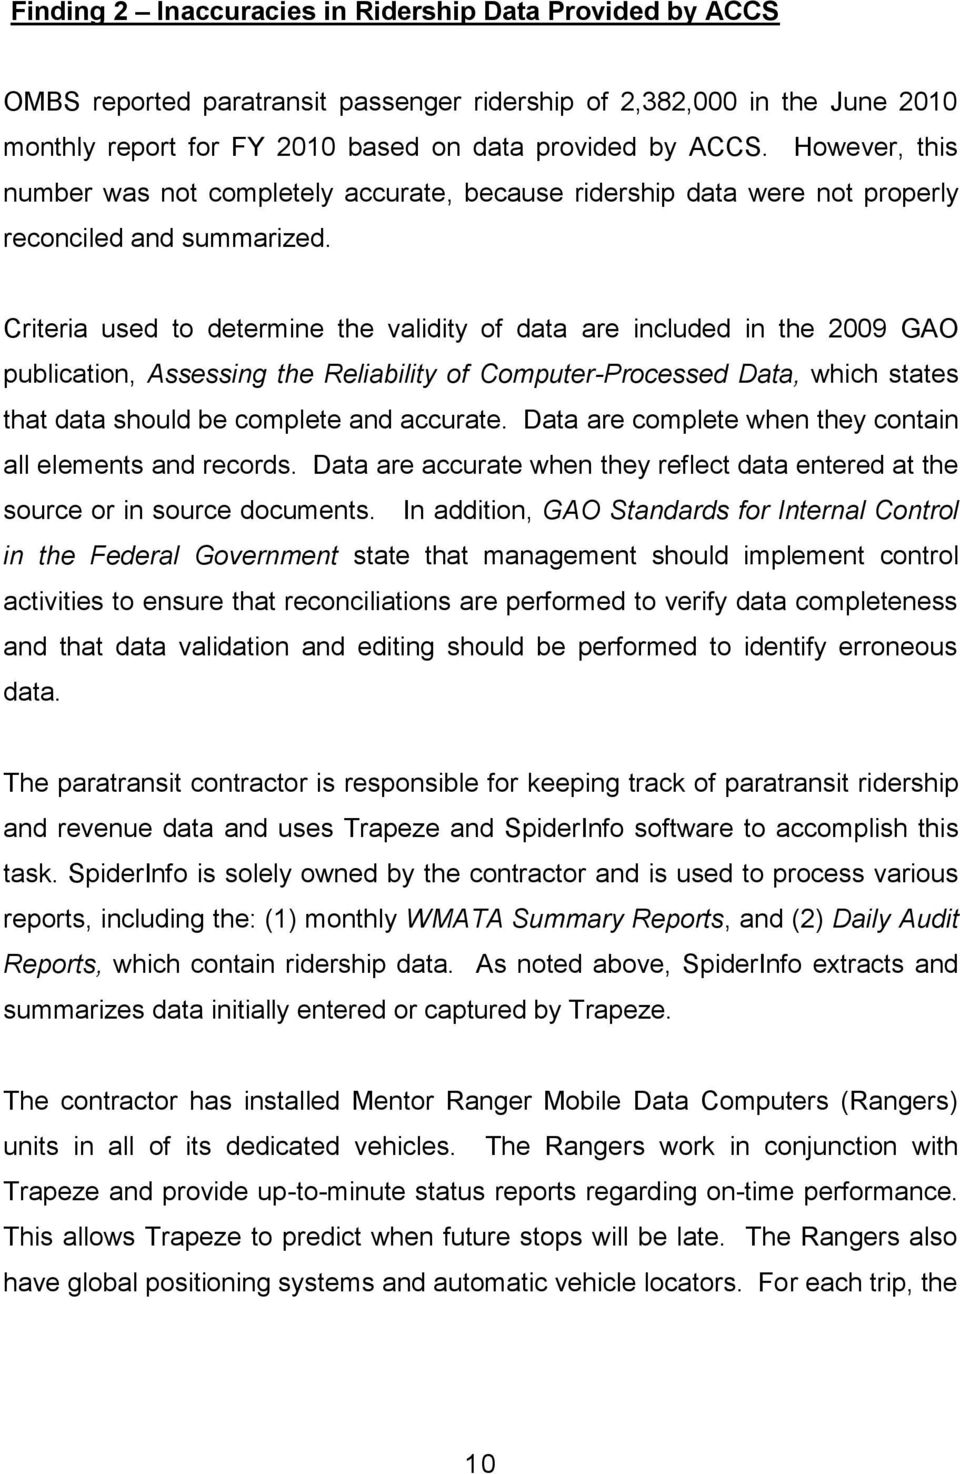 Criteria used to determine the validity of data are included in the 2009 GAO publication, Assessing the Reliability of Computer-Processed Data, which states that data should be complete and accurate.